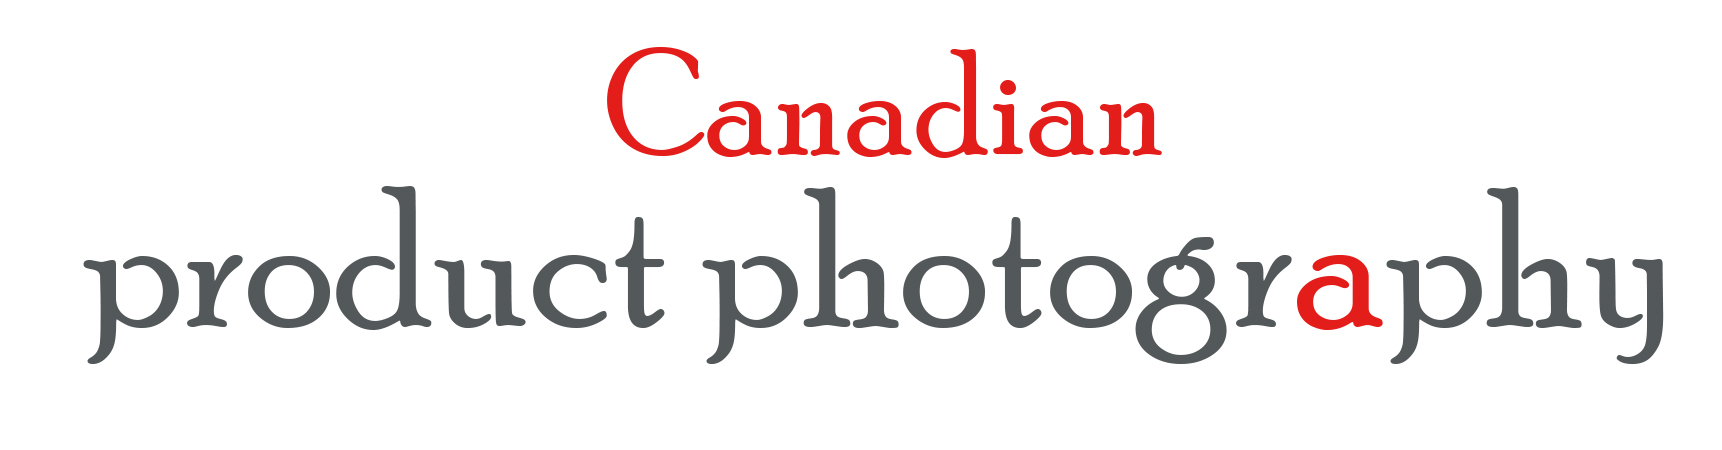 Logo Design by Nona Smith - Entry No. 65 in the Logo Design Contest Artistic Logo Design for Canadian Product Photography.